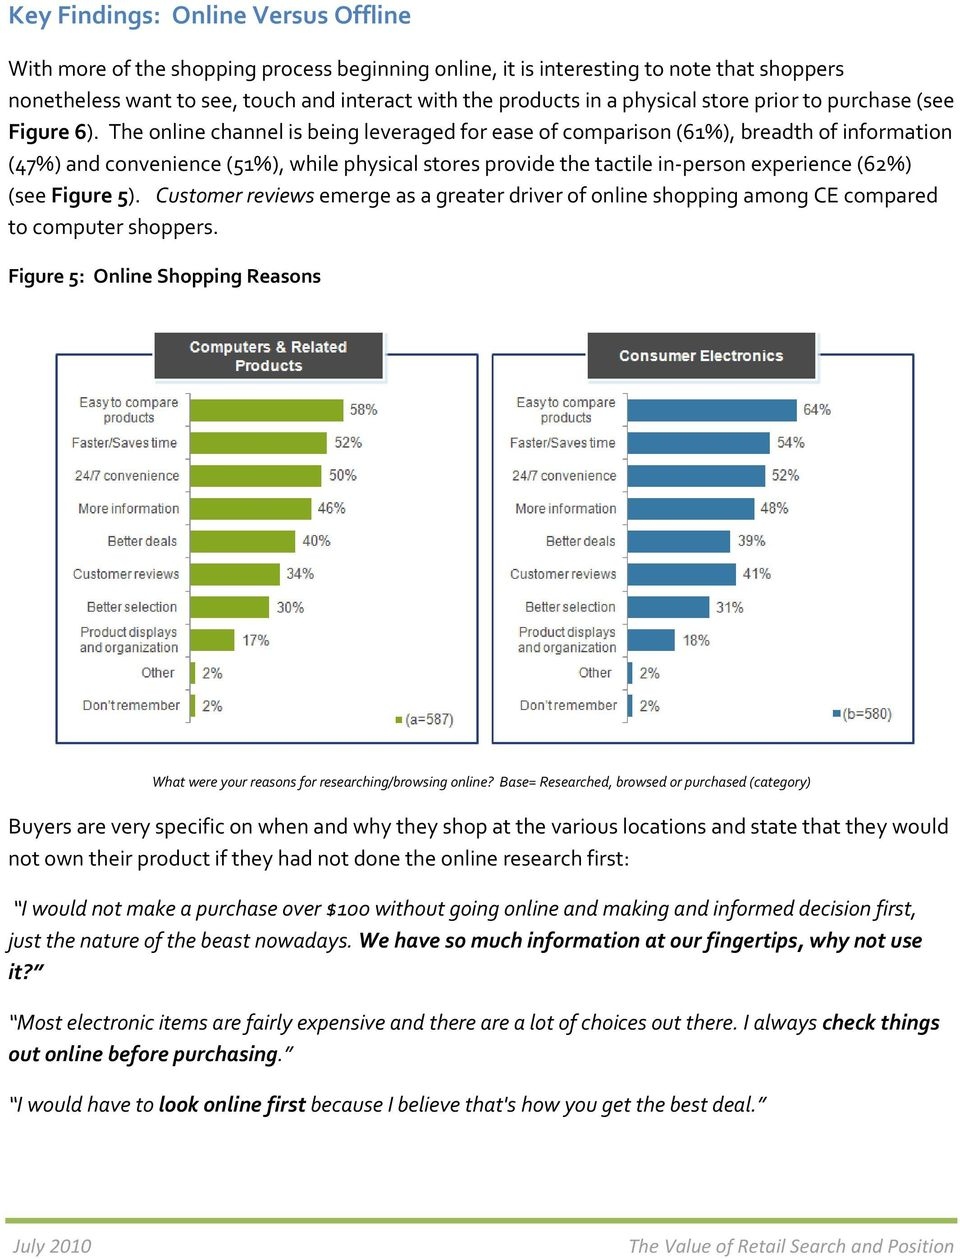 The online channel is being leveraged for ease of comparison (61%), breadth of information (47%) and convenience (51%), while physical stores provide the tactile in person experience (62%) (see